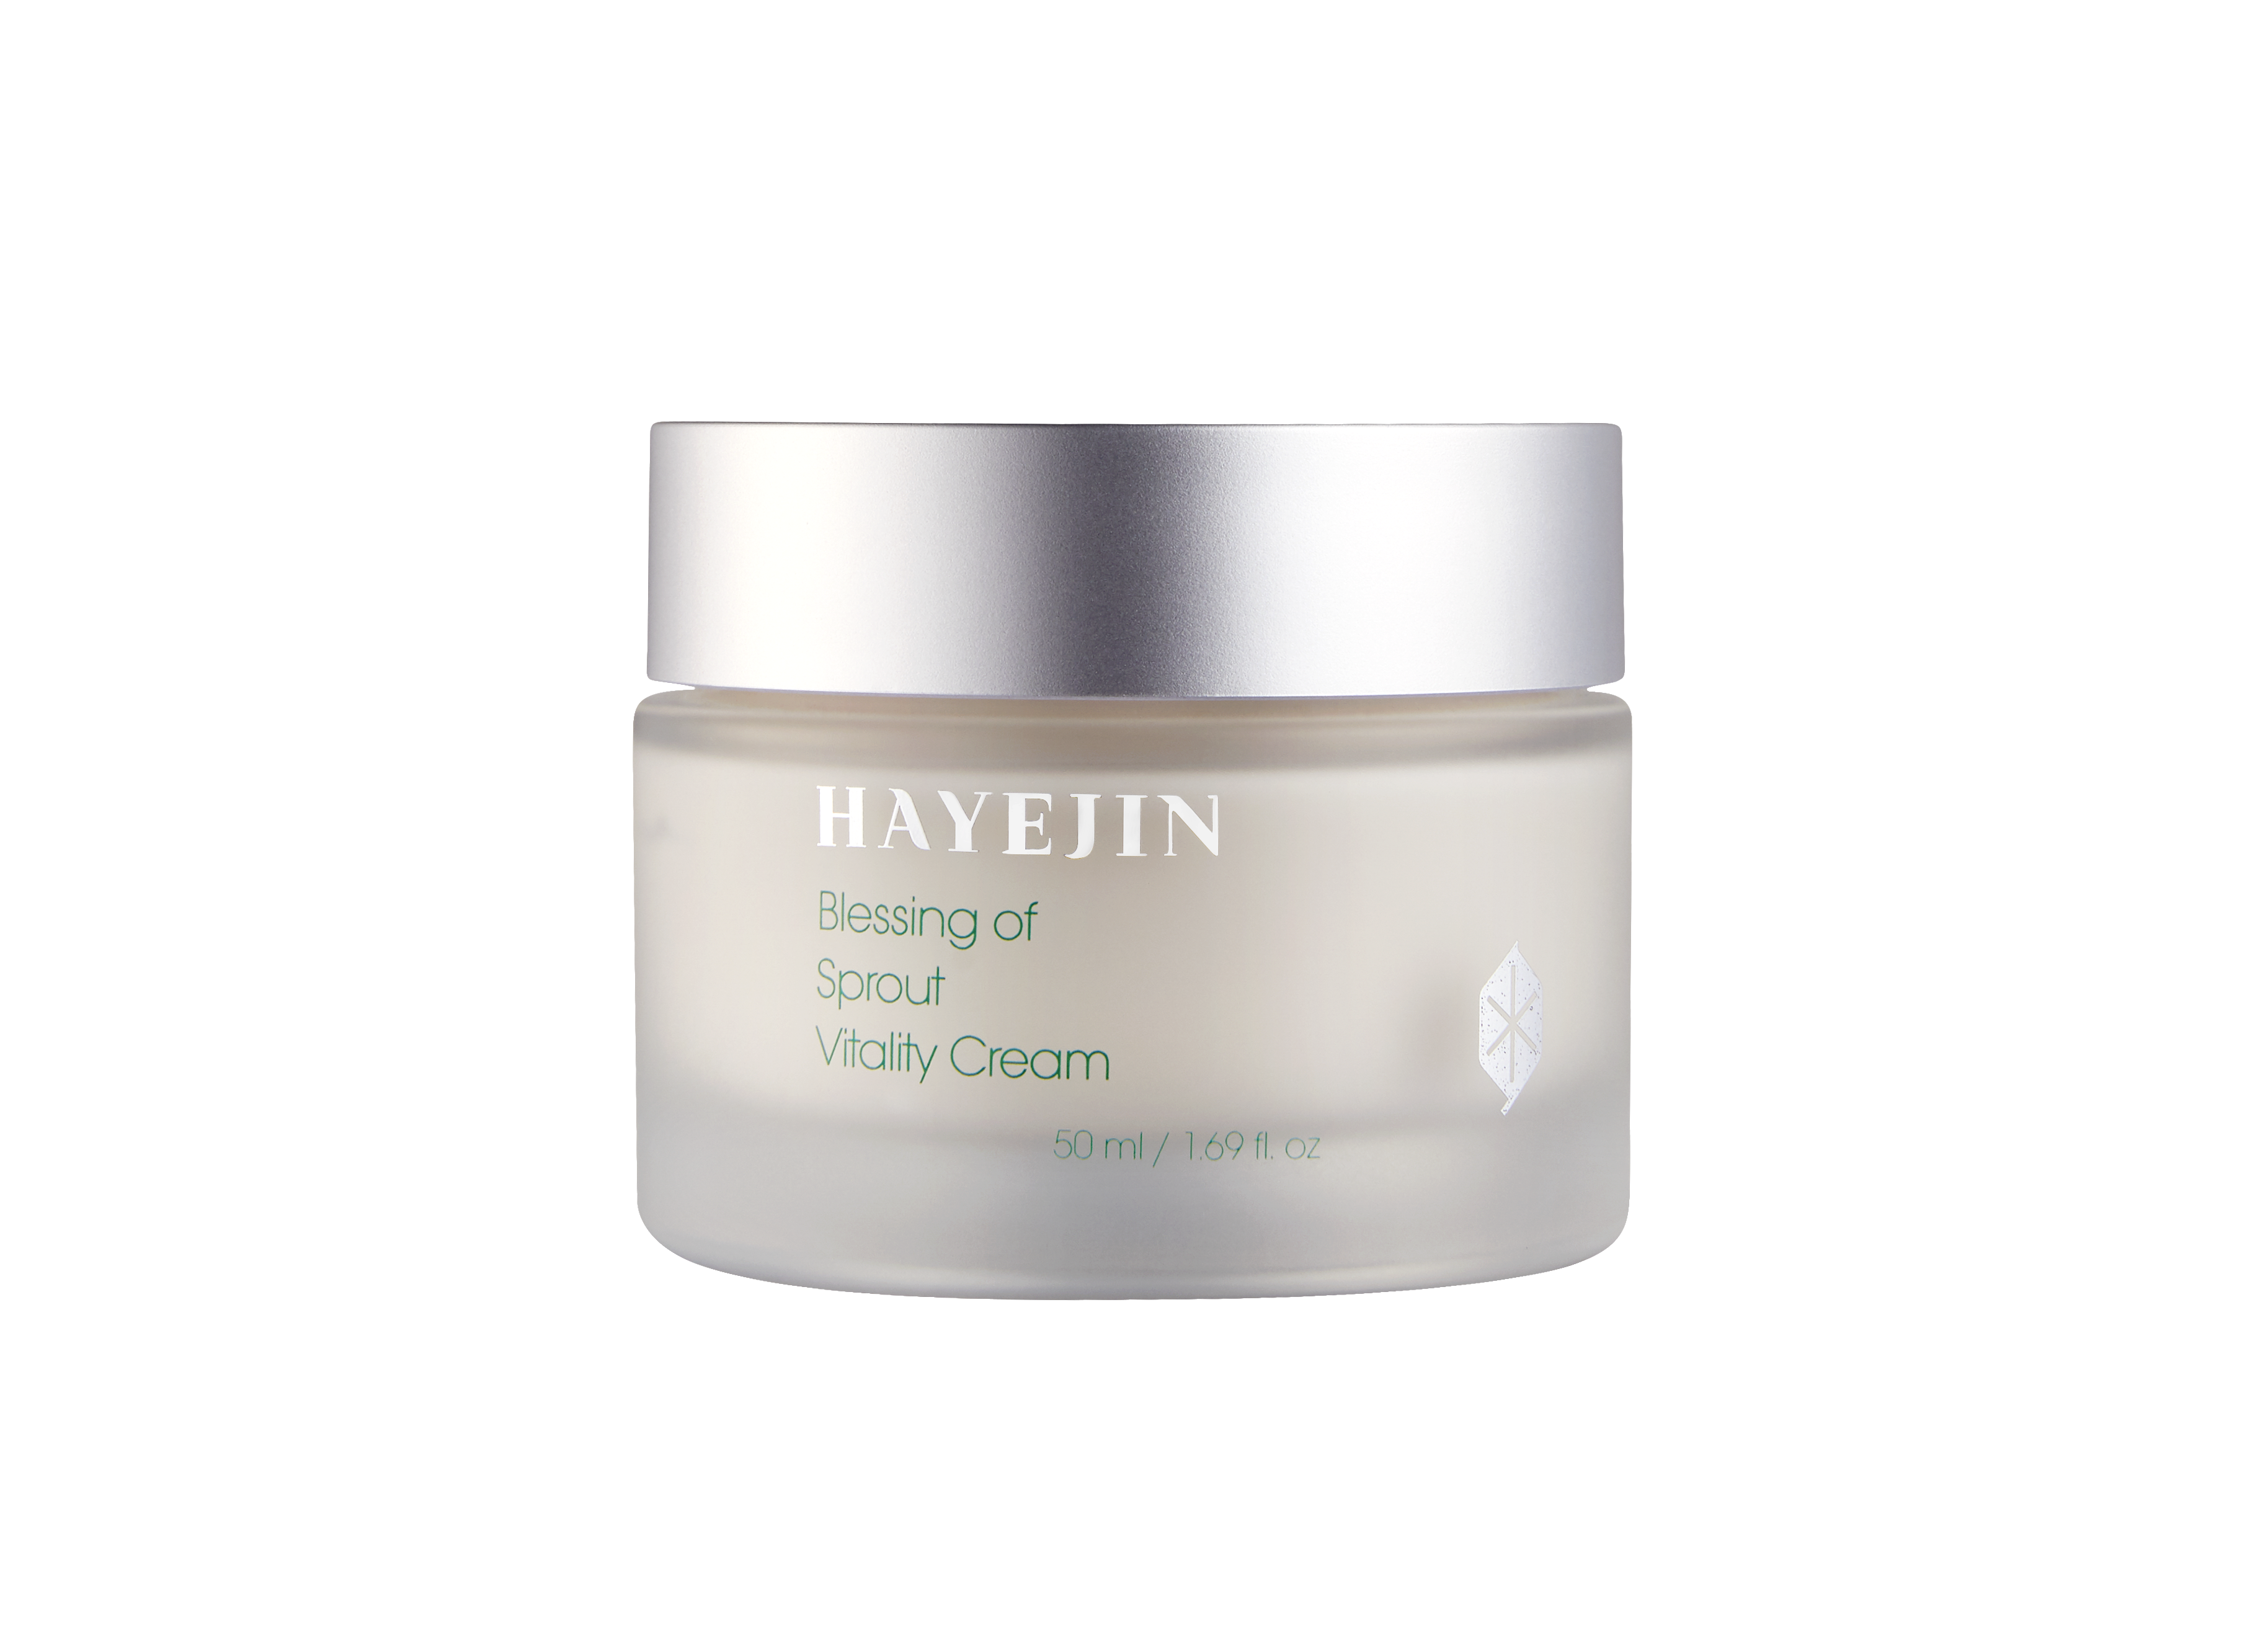 HAYJEIN Blessing of Sprout Vitality Cream